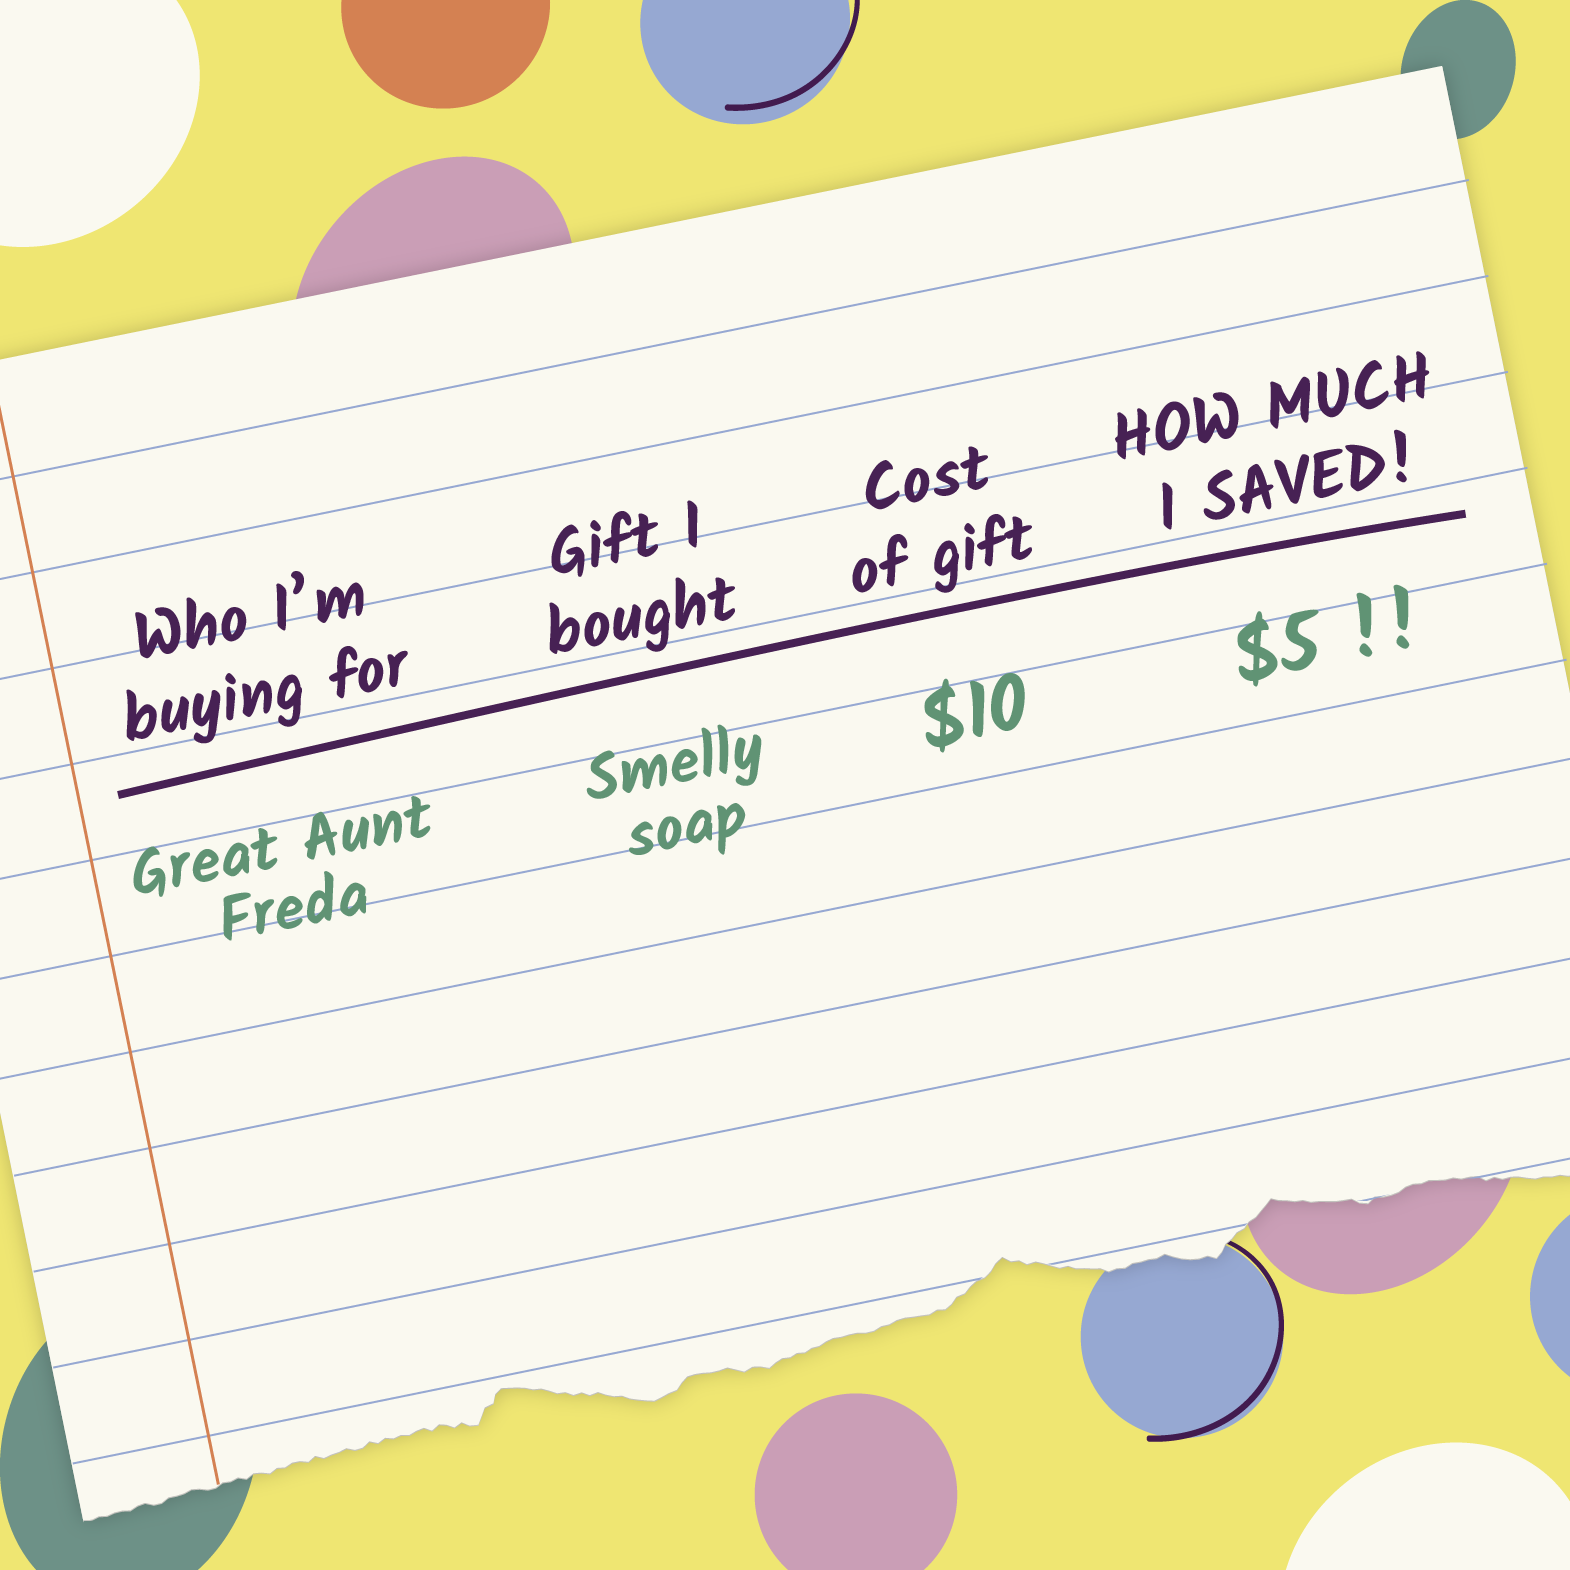 A list for Christmas gift shopping with person to buy for, the gift, how much the gift cost, and how much money was saved